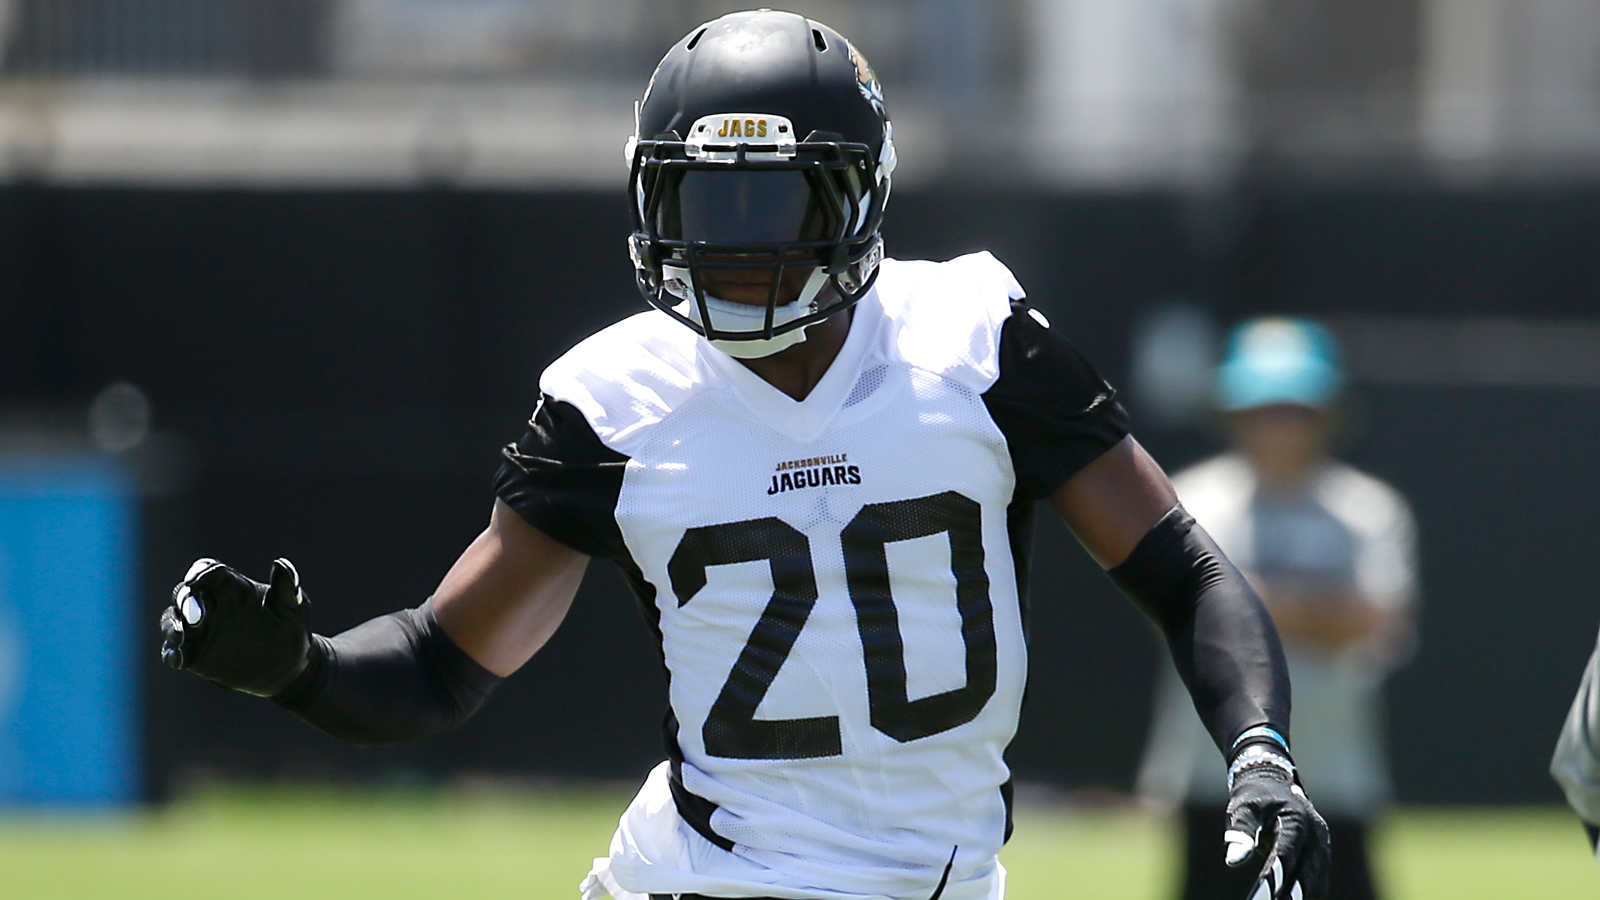 Jaguars first-rounder Jalen Ramsey wasting no time impressing in camp